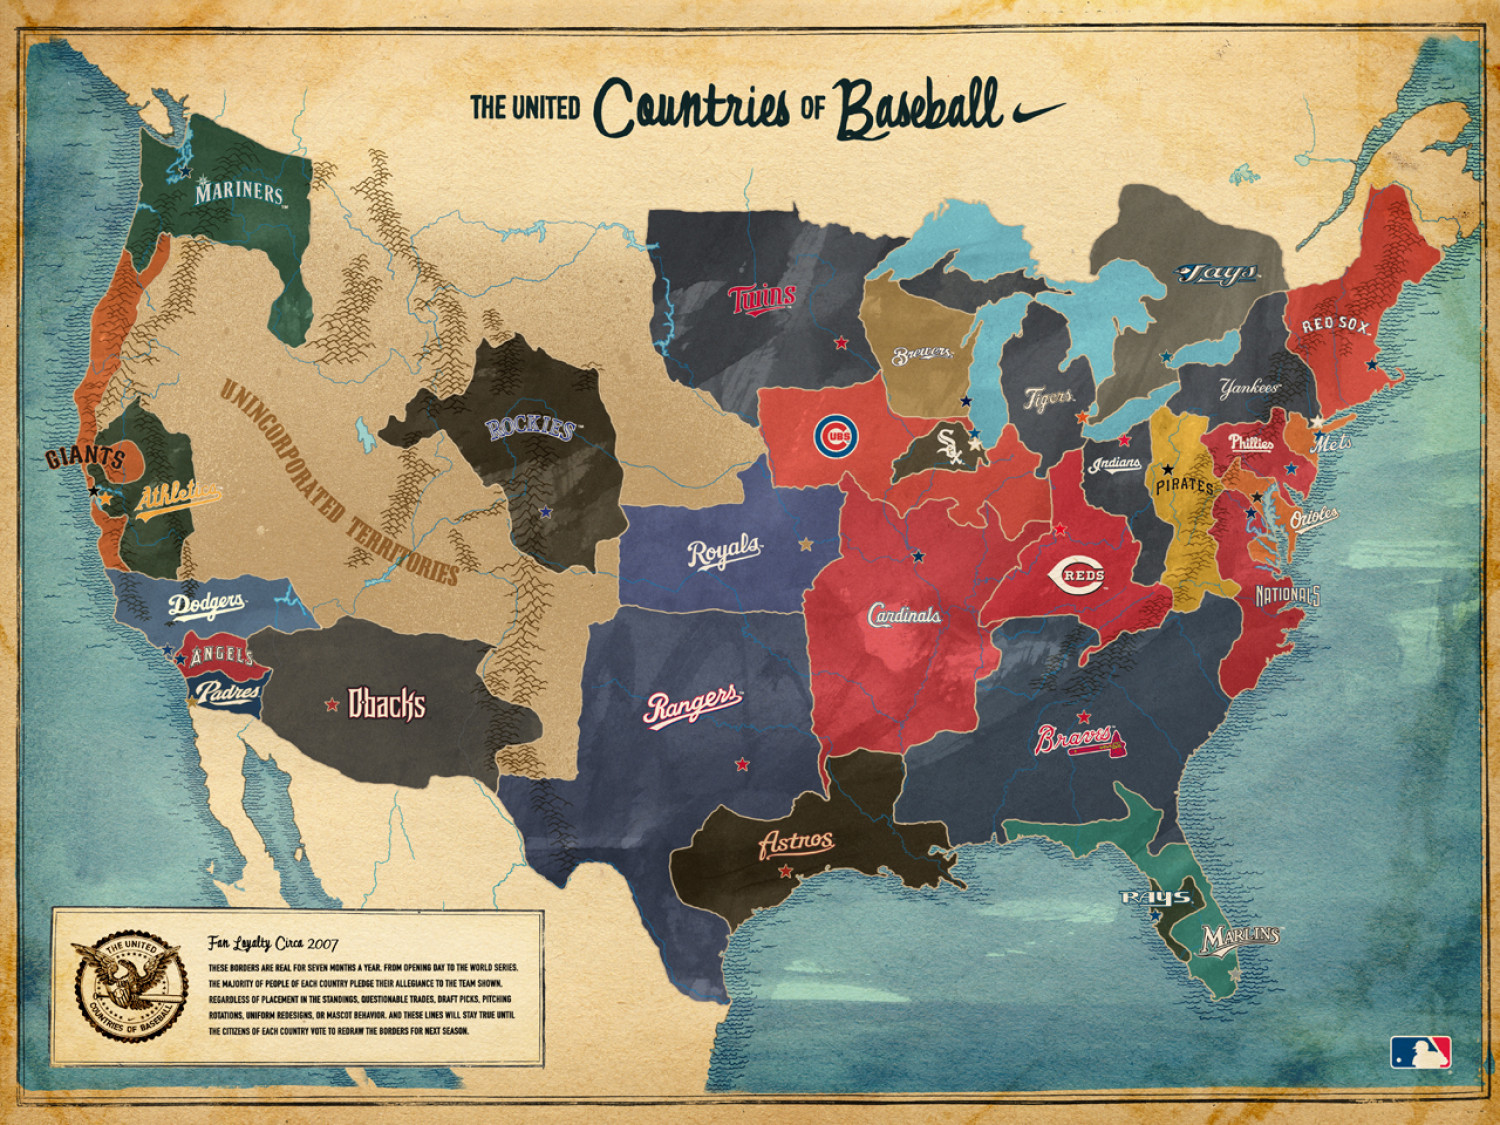 The United Countries of Baseball Infographic